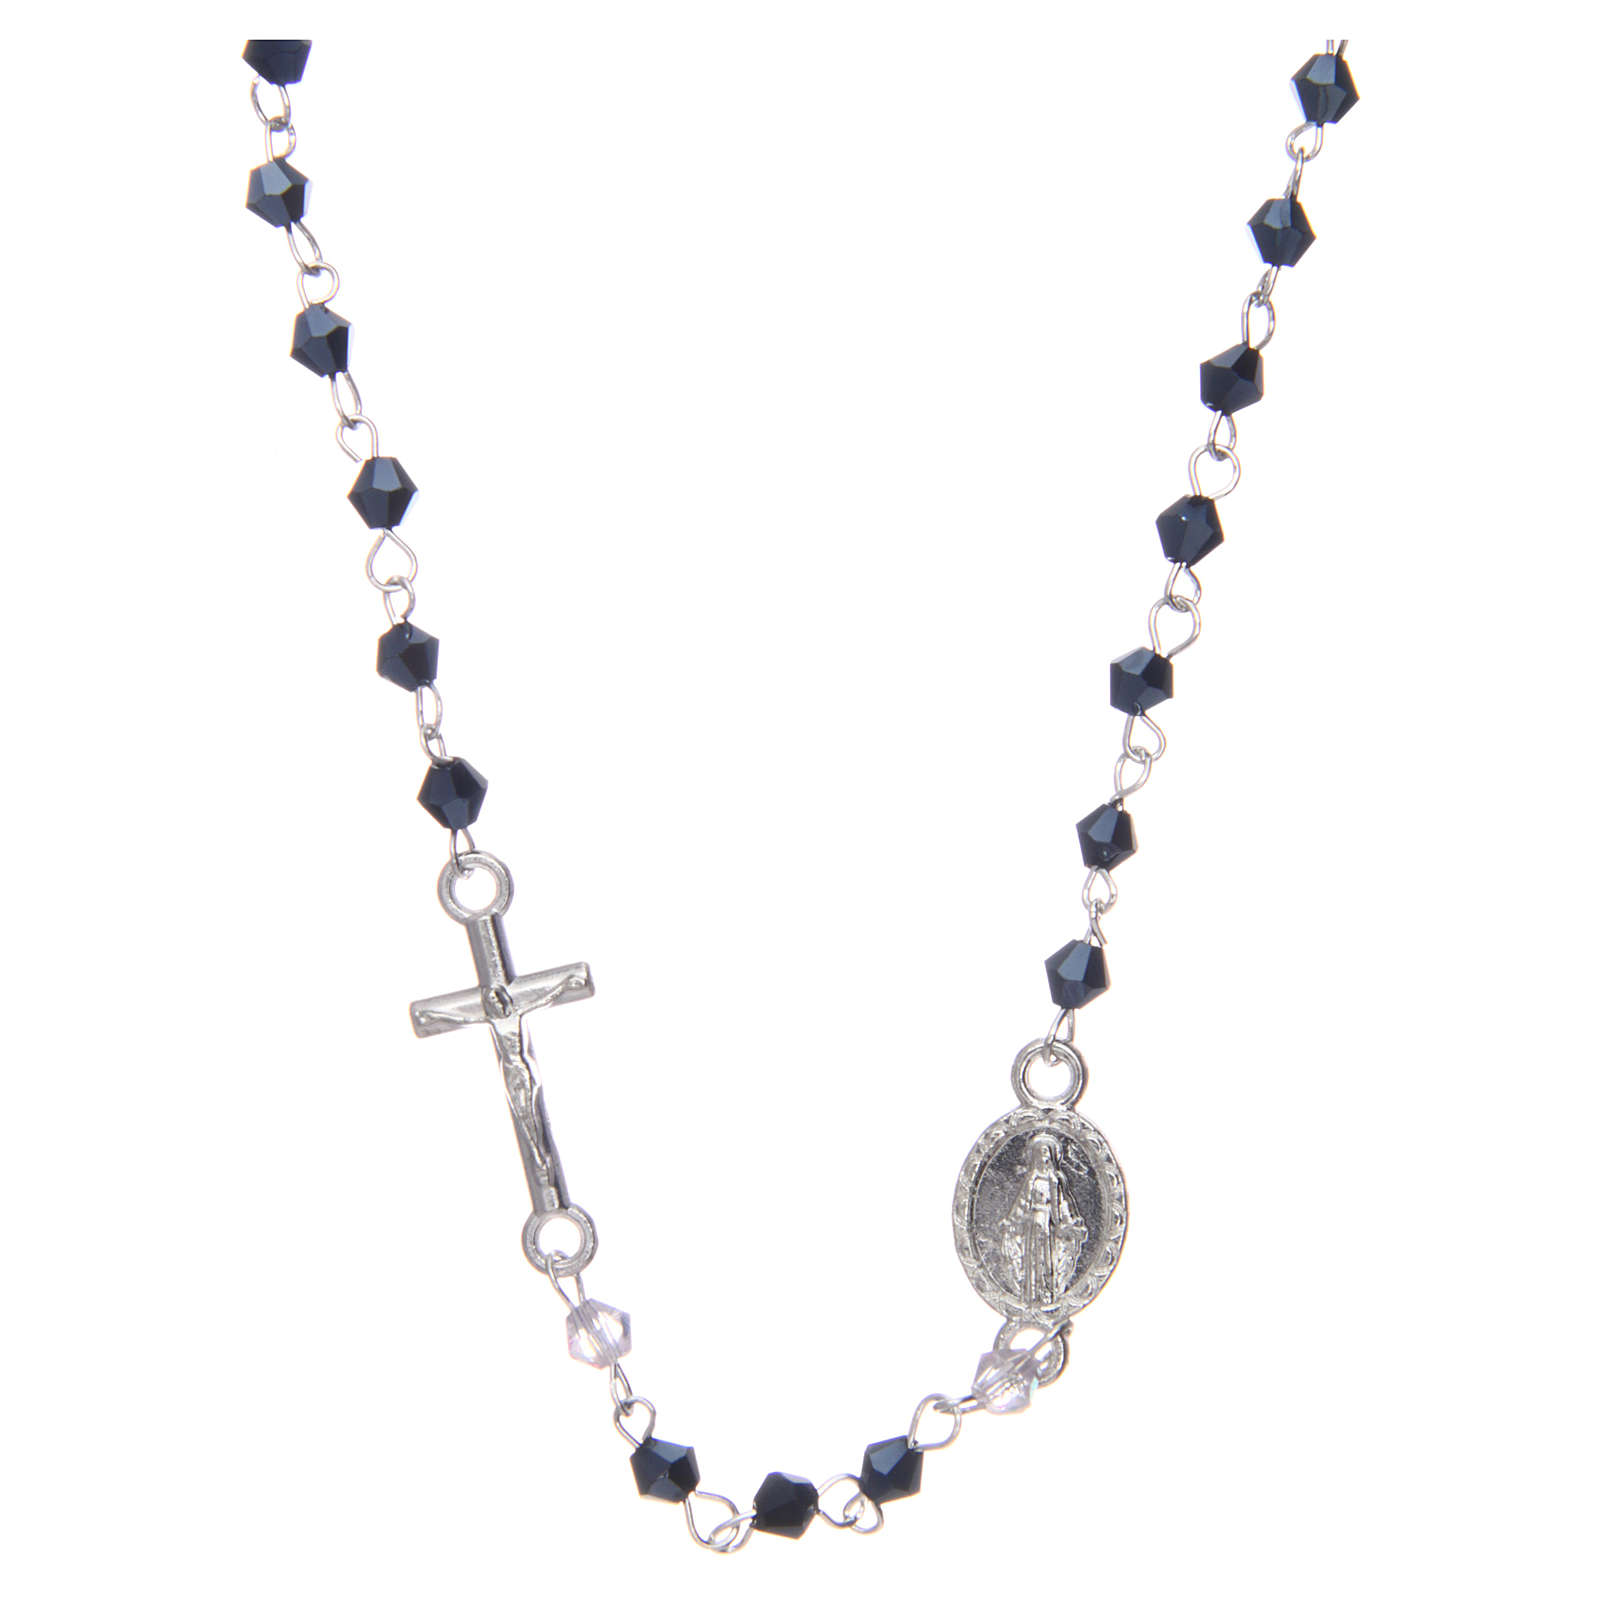 Wearable rosary with 3mm oval beads in black iridescent crystal 4